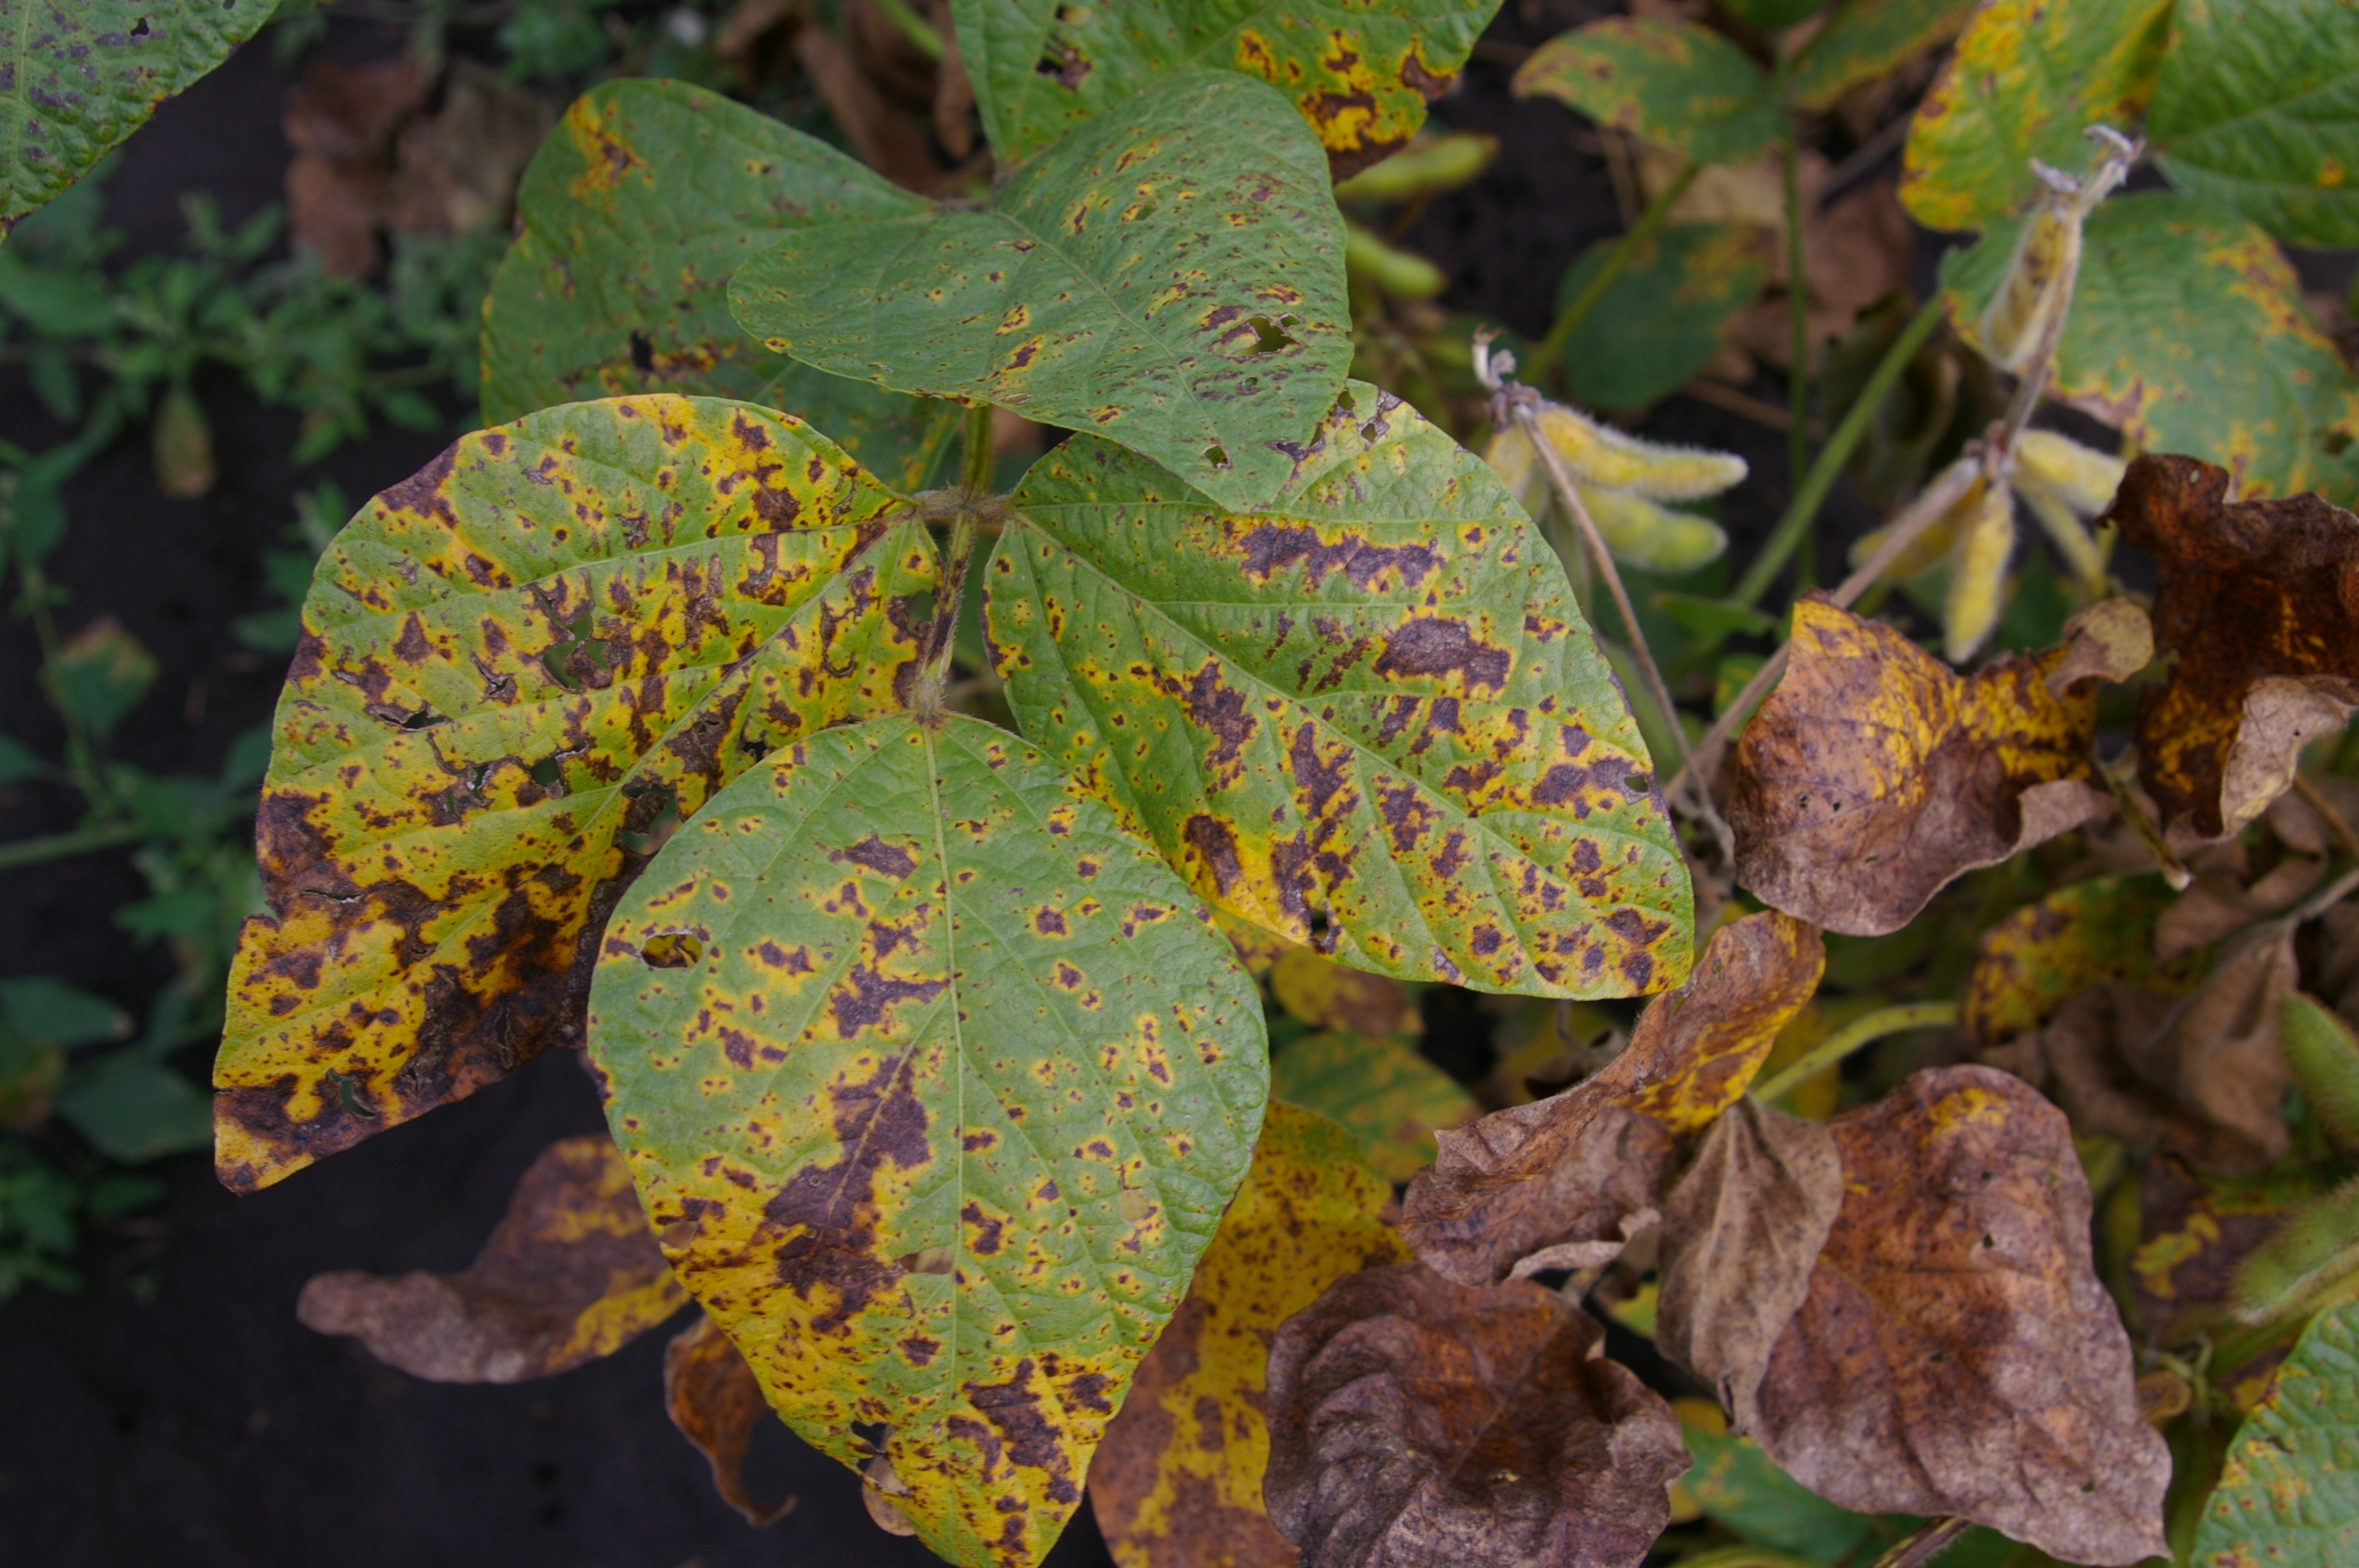 Septoria brown spot lesions can grow together and form large, irregular blotches on leaves.